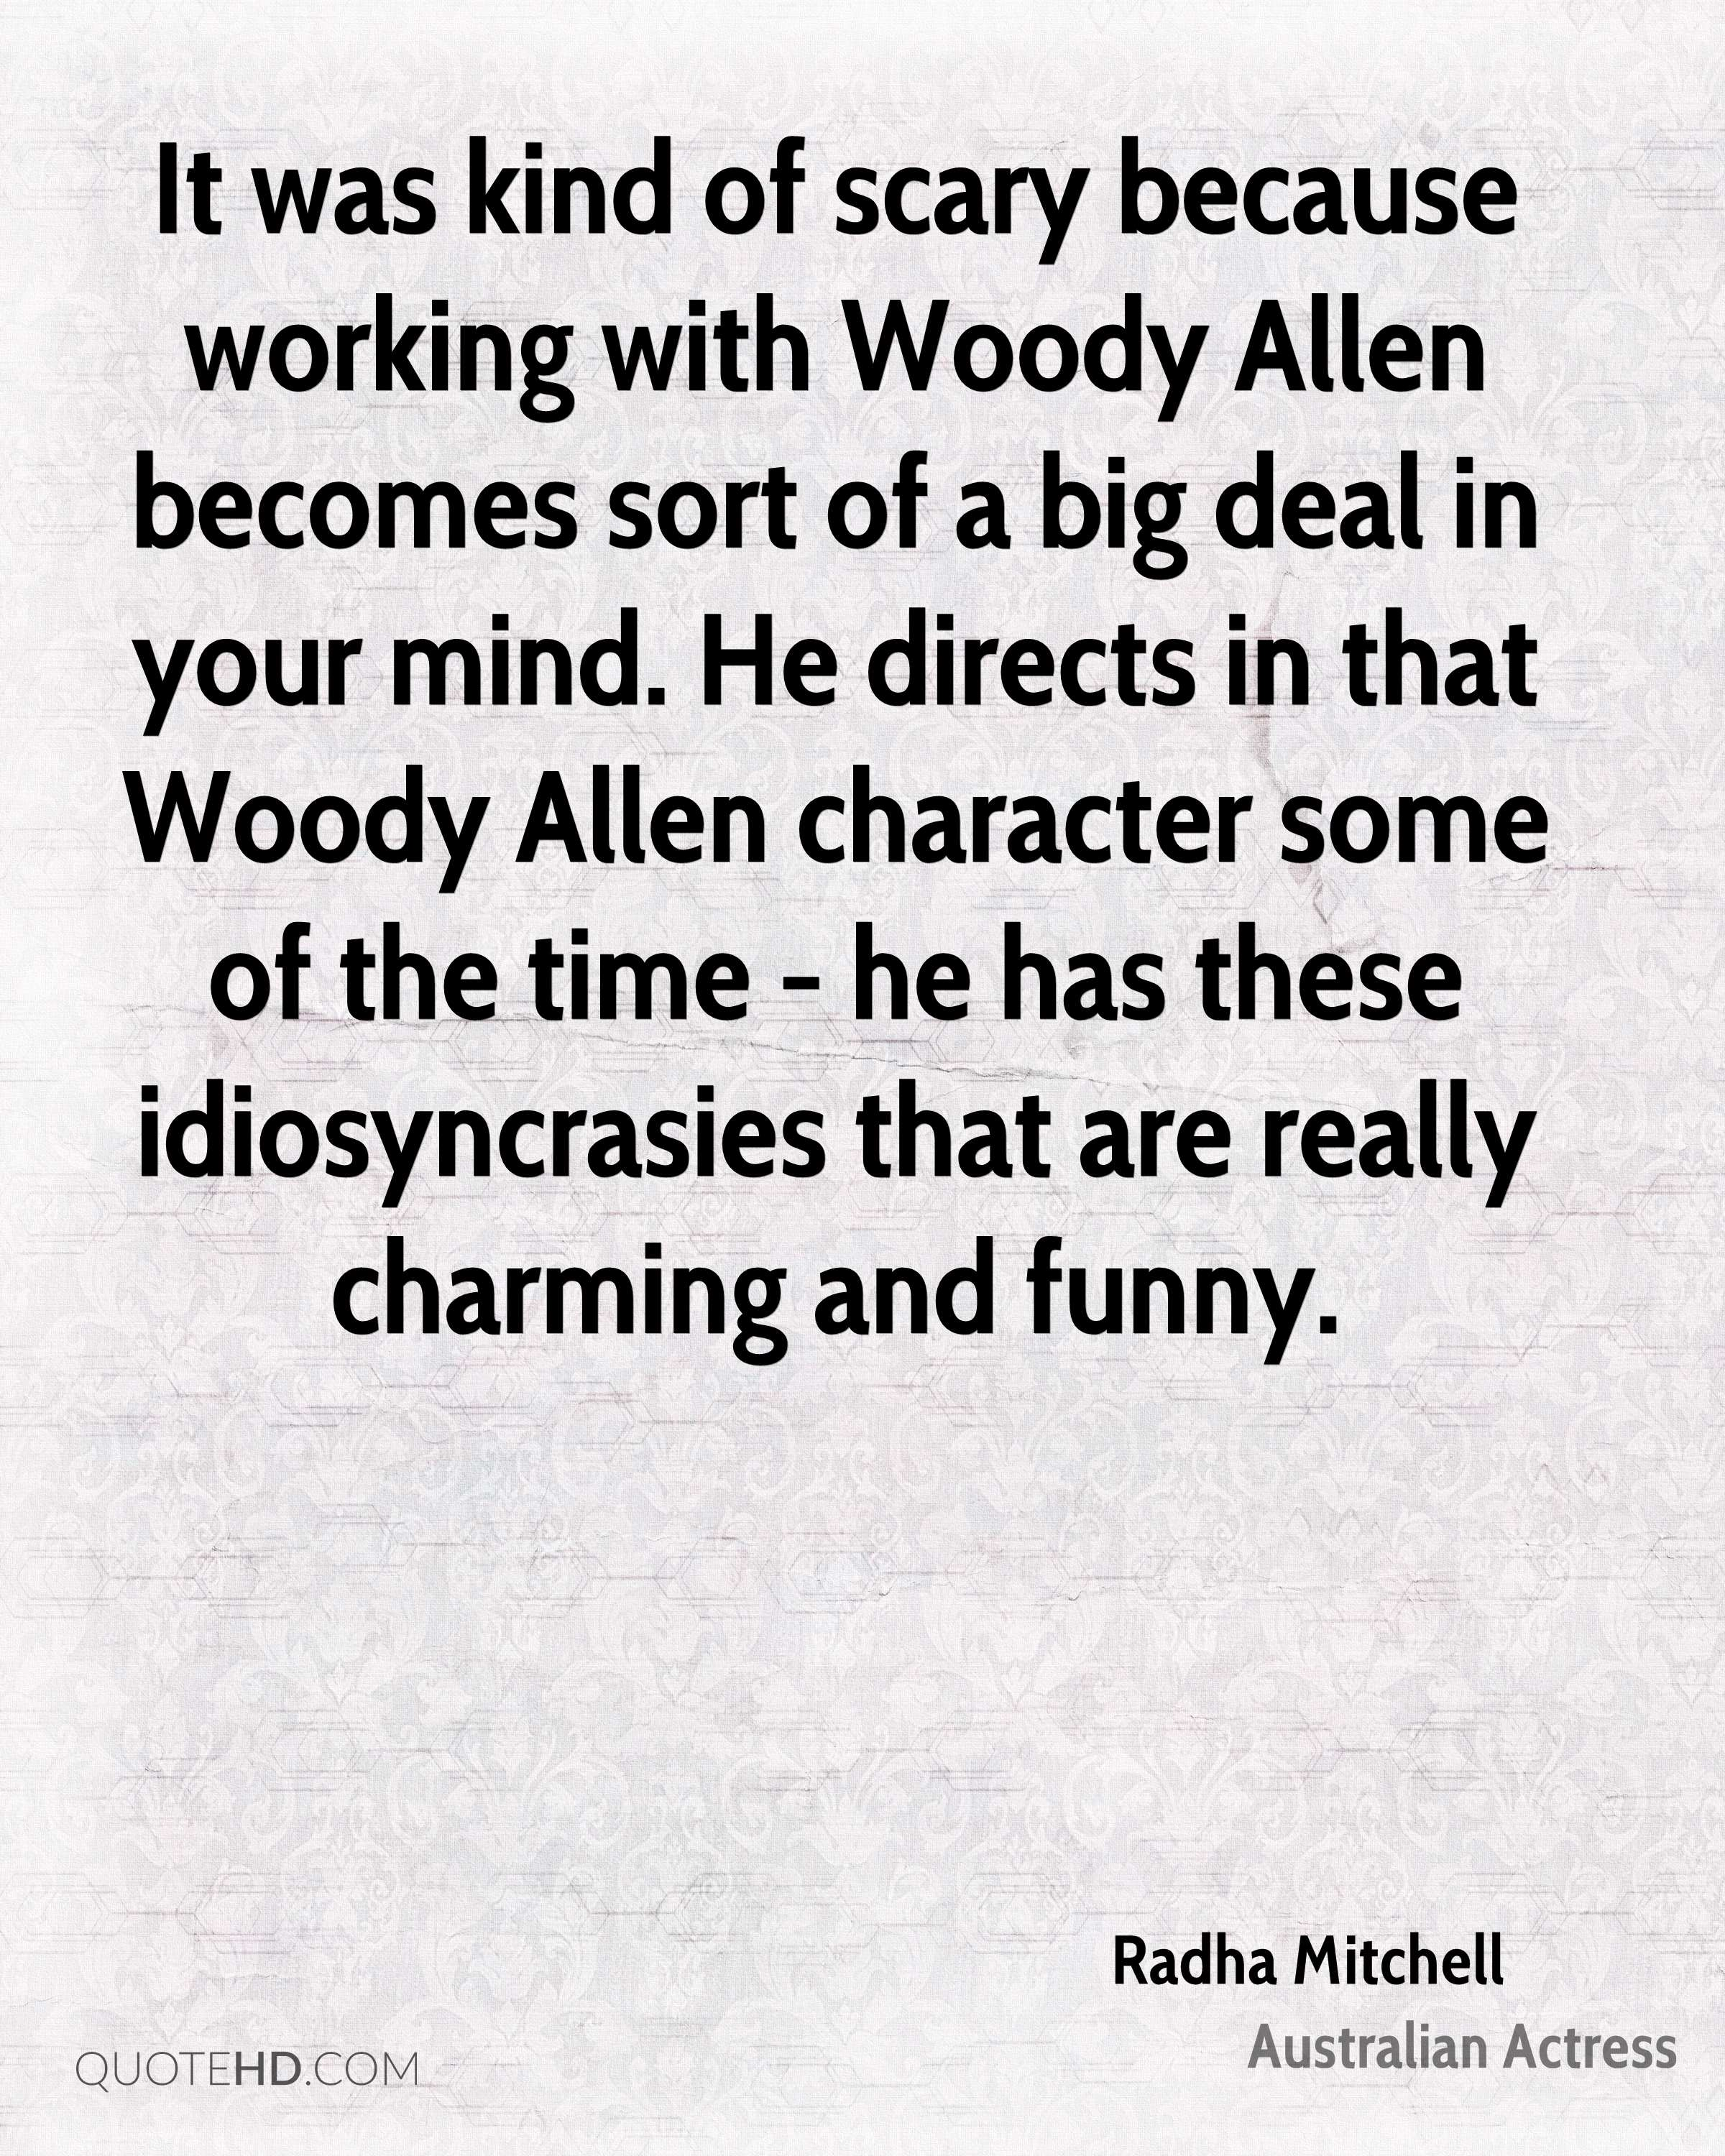 It was kind of scary because working with Woody Allen becomes sort of a big deal in your mind. He directs in that Woody Allen character some of the time - he has these idiosyncrasies that are really charming and funny.